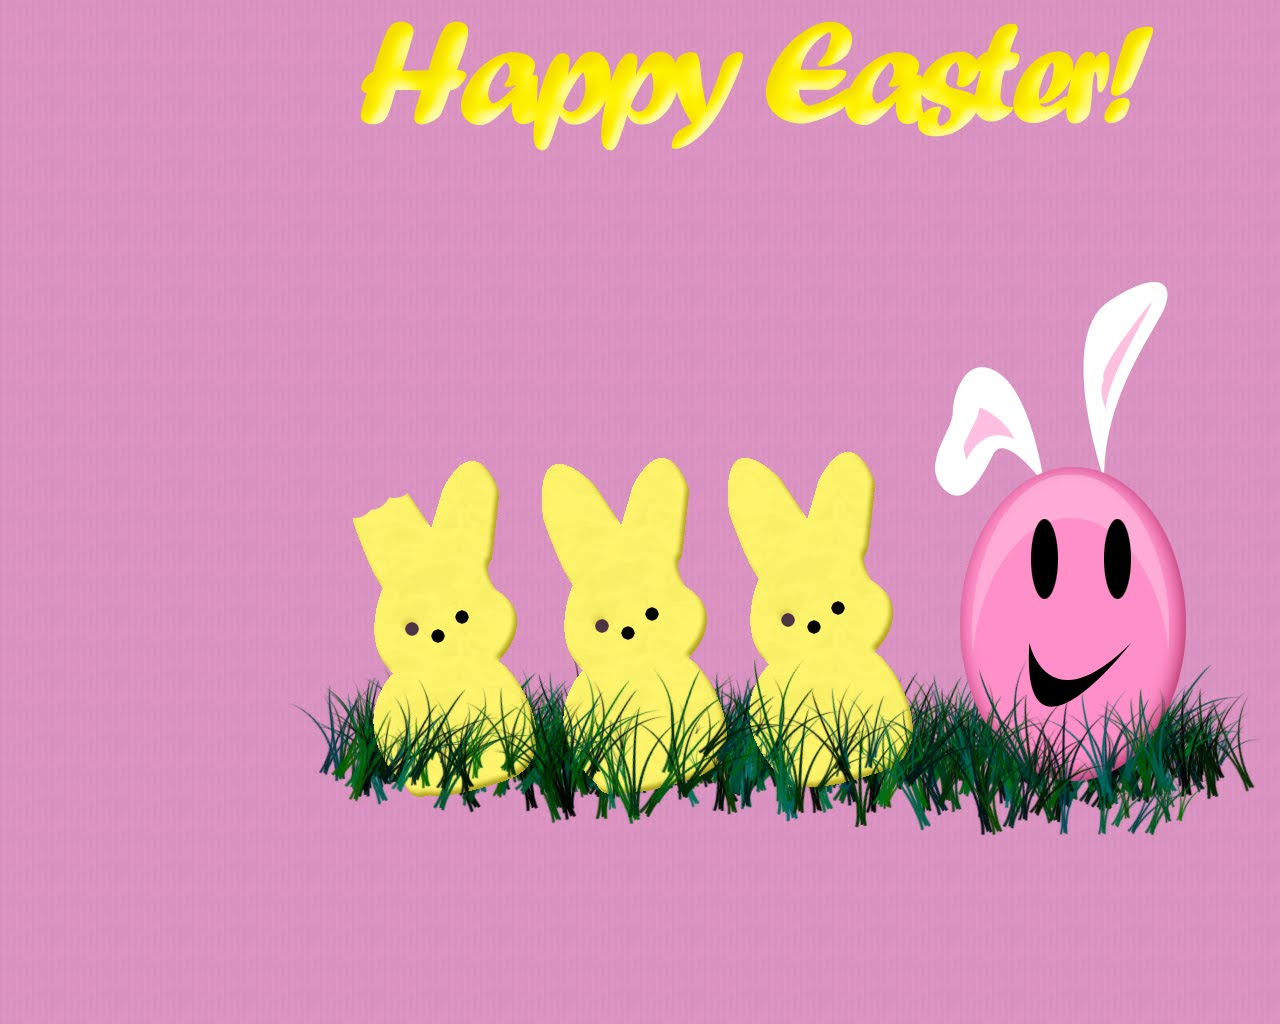 happy easter wallpaper christian - photo #28